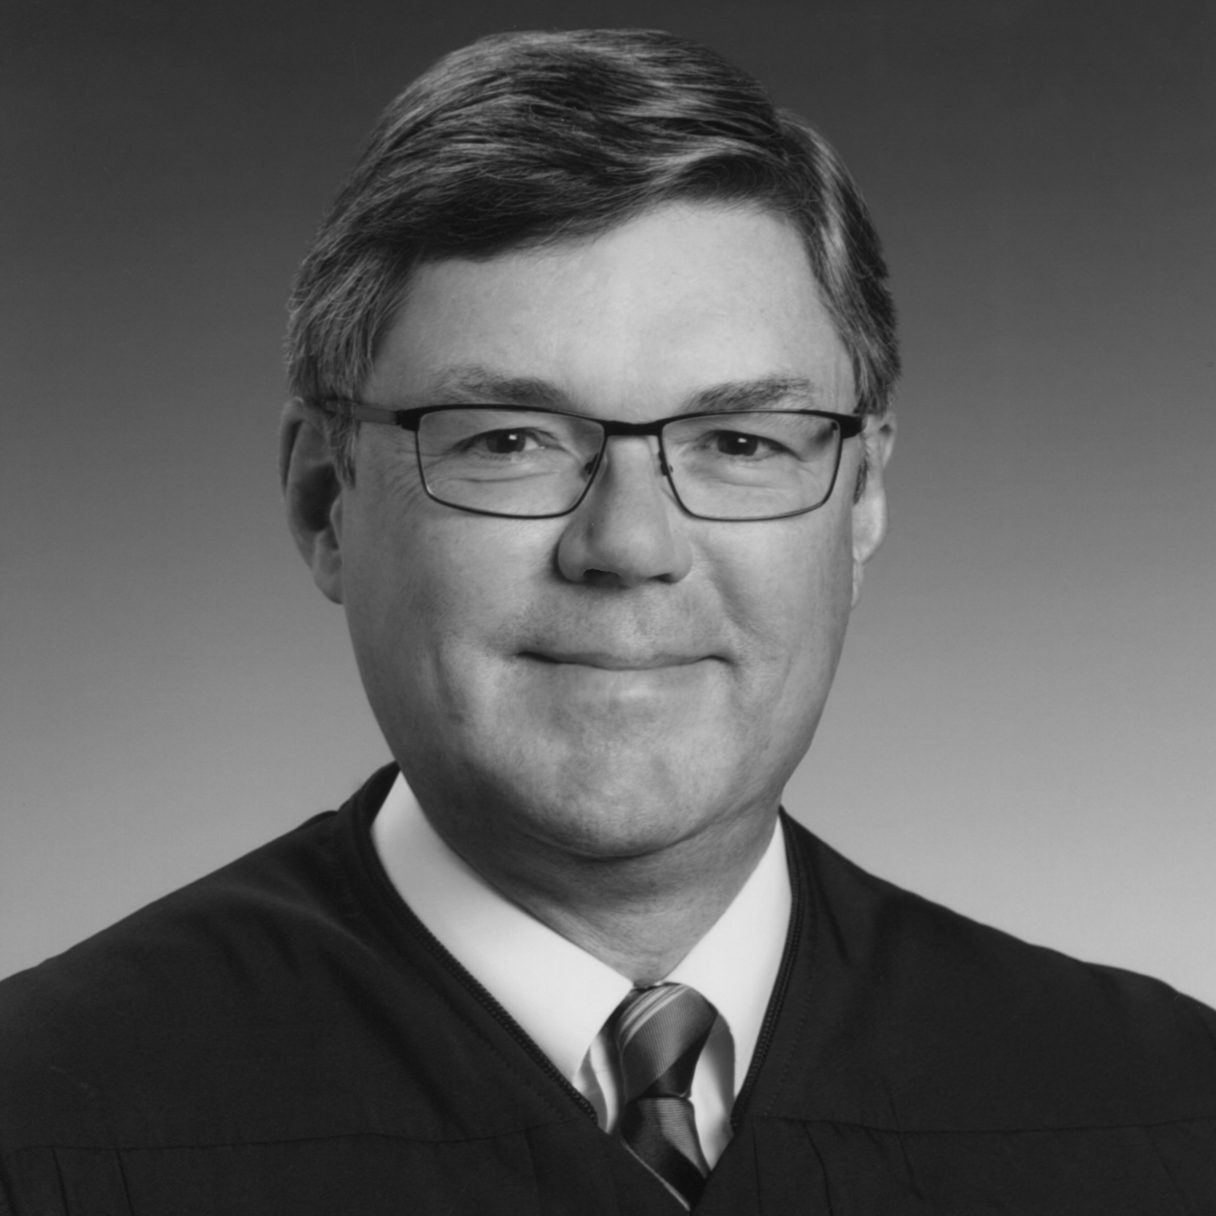 Black-and-white photo of man in glasses wearing shirt and tie and judicial robe.